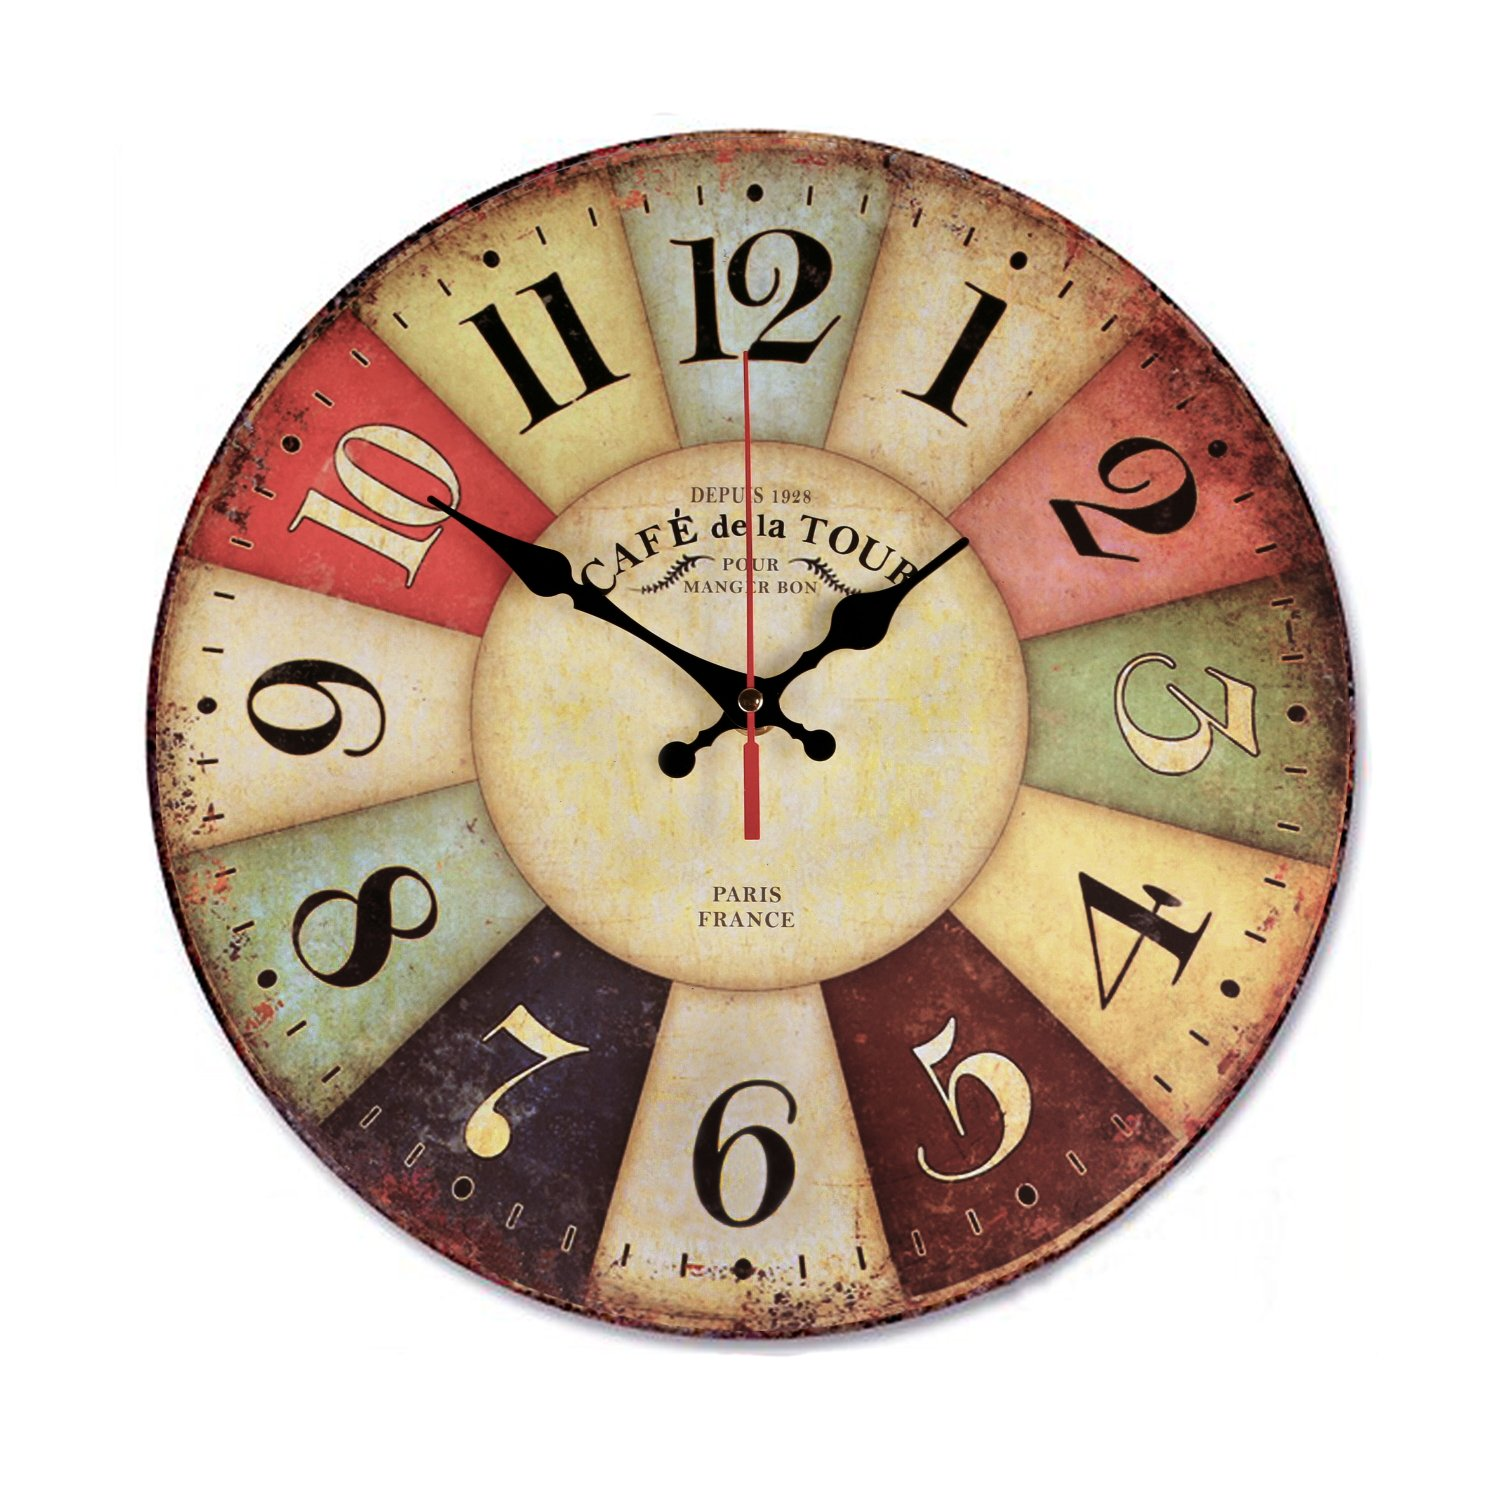 Amazon 12 inch retro wooden wall clock farmhouse decor amazon 12 inch retro wooden wall clock farmhouse decor nalakuvara silent non ticking wall clocks large decorative big wood atomic analog battery amipublicfo Choice Image